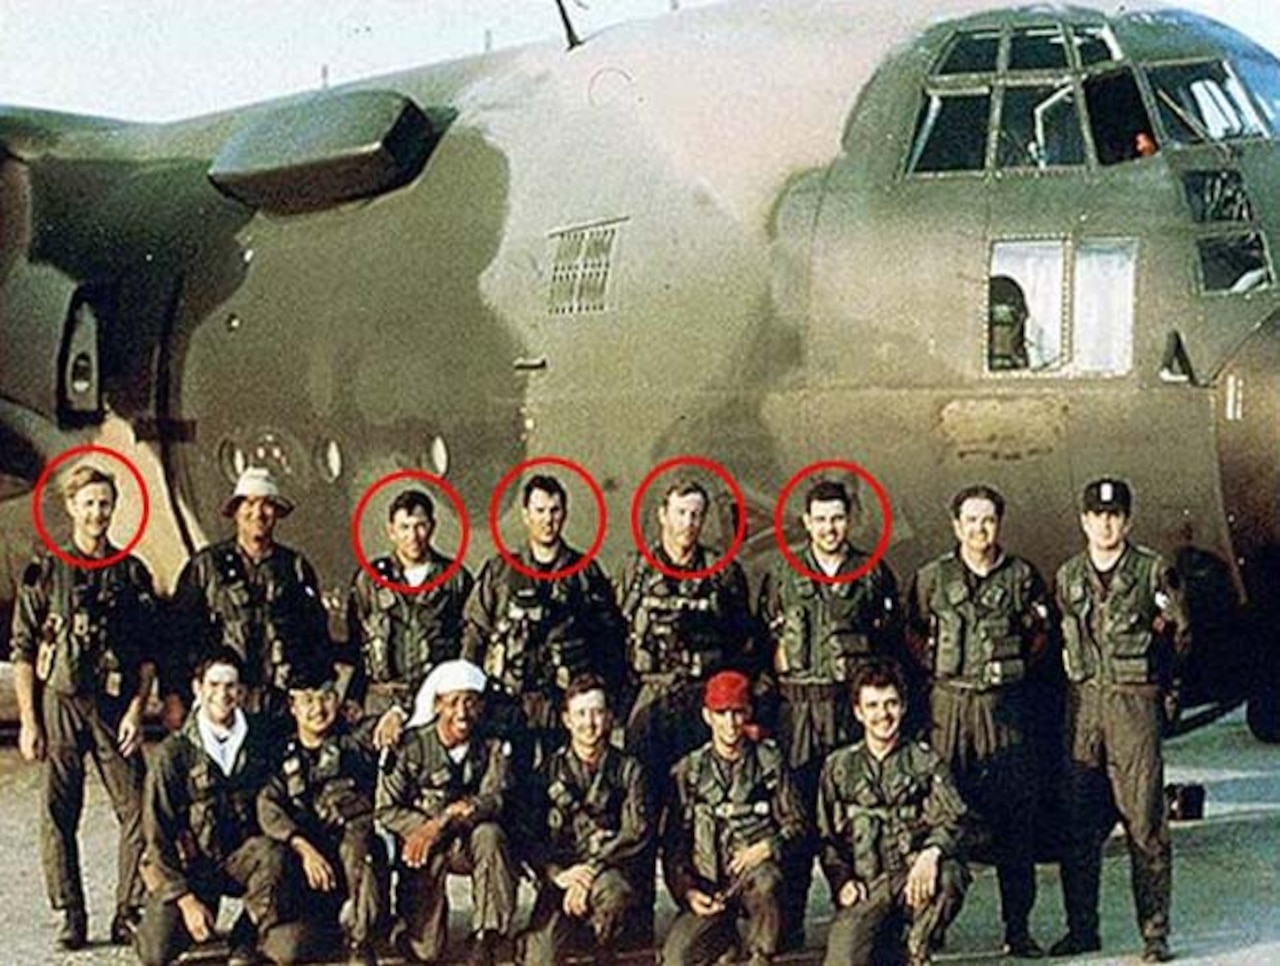 Men pose for photo in front of plane. Circles identify five men who were killed in an accident.